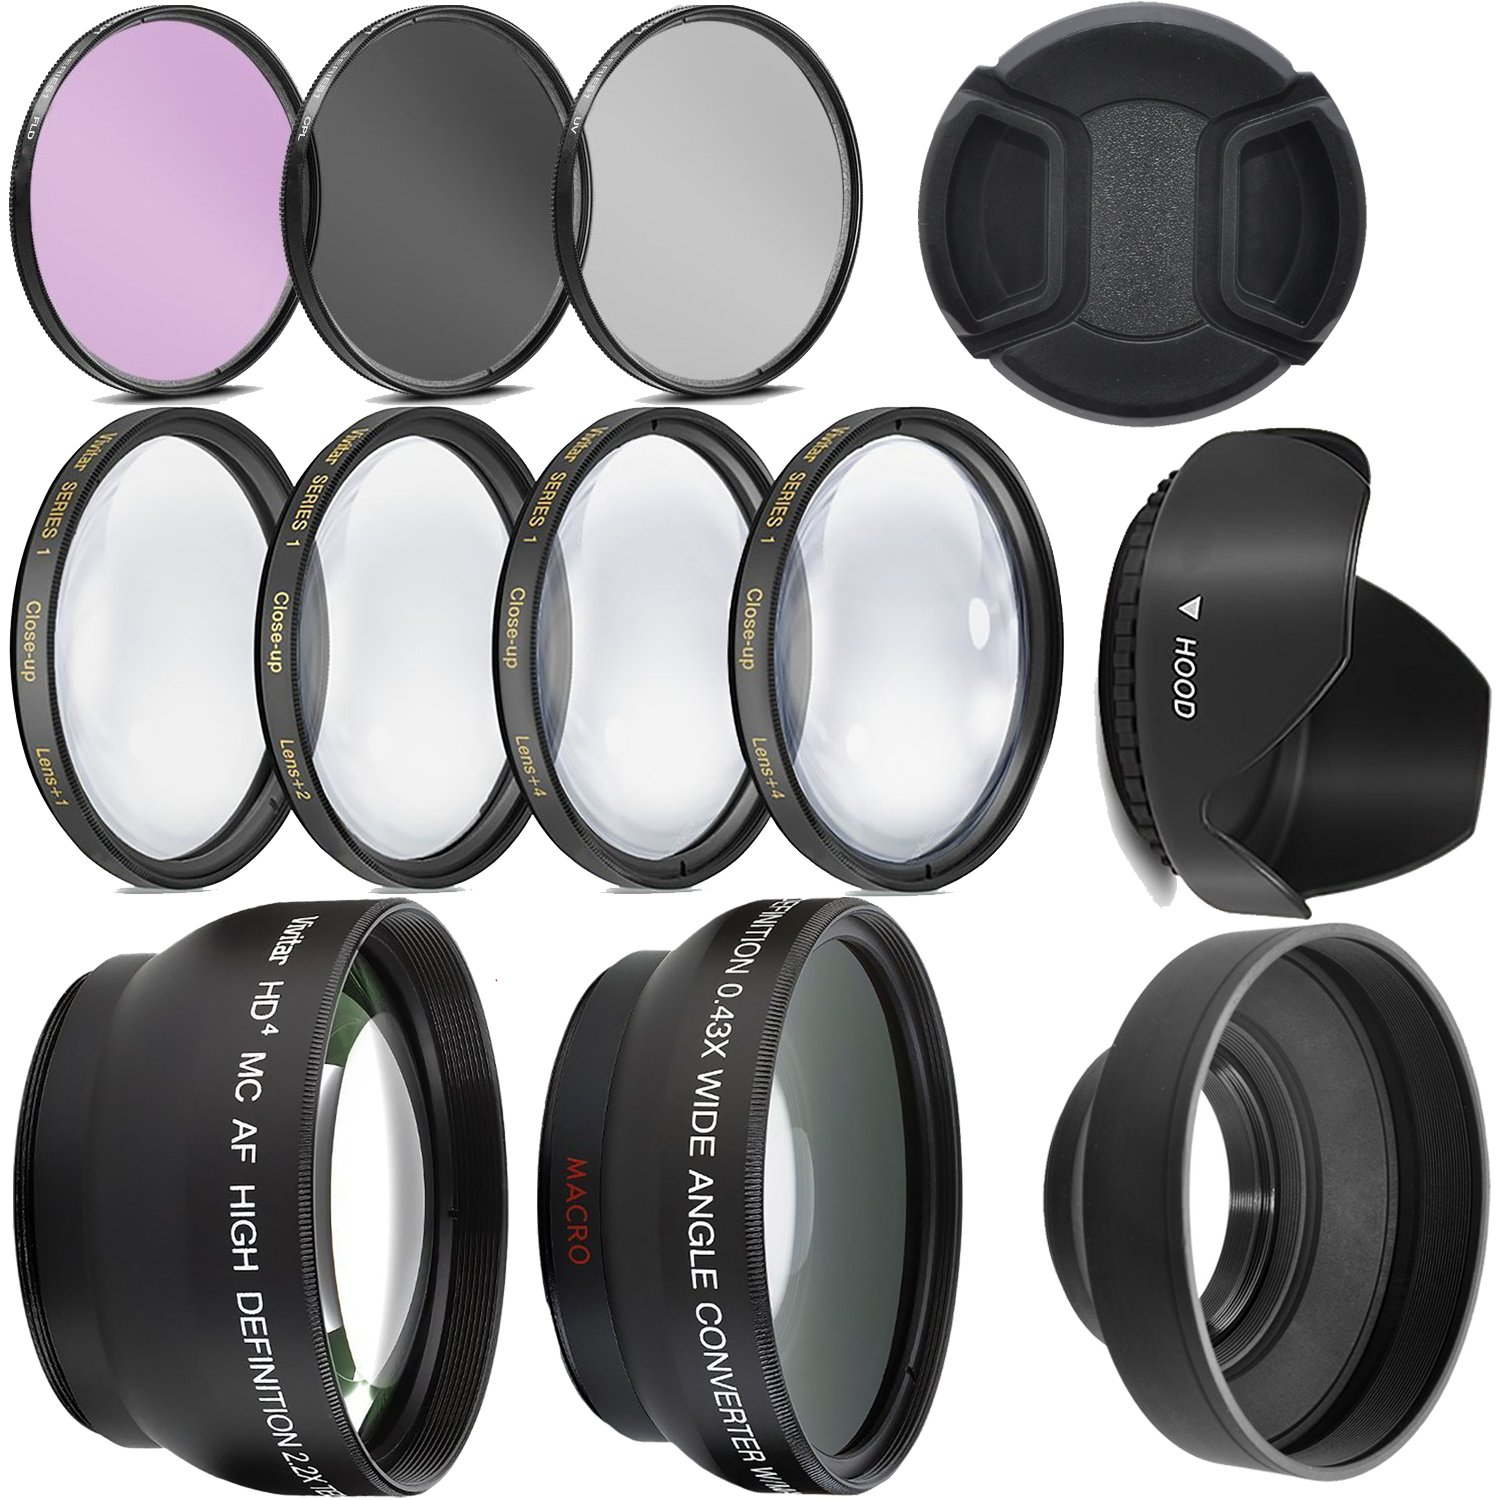 Ultra Deluxe Lens Kit for Canon Rebel T3, T5, T5i, T6, T6i, T7i, Eos 80D, Eos 77D Cameras with Canon EF-S 18-55mm is II STM Lens - Includes: 7pc 58mm Filter Set + 58mm Wide Angle and Telephoto Lens Big Mike' s 58MM FILTERS